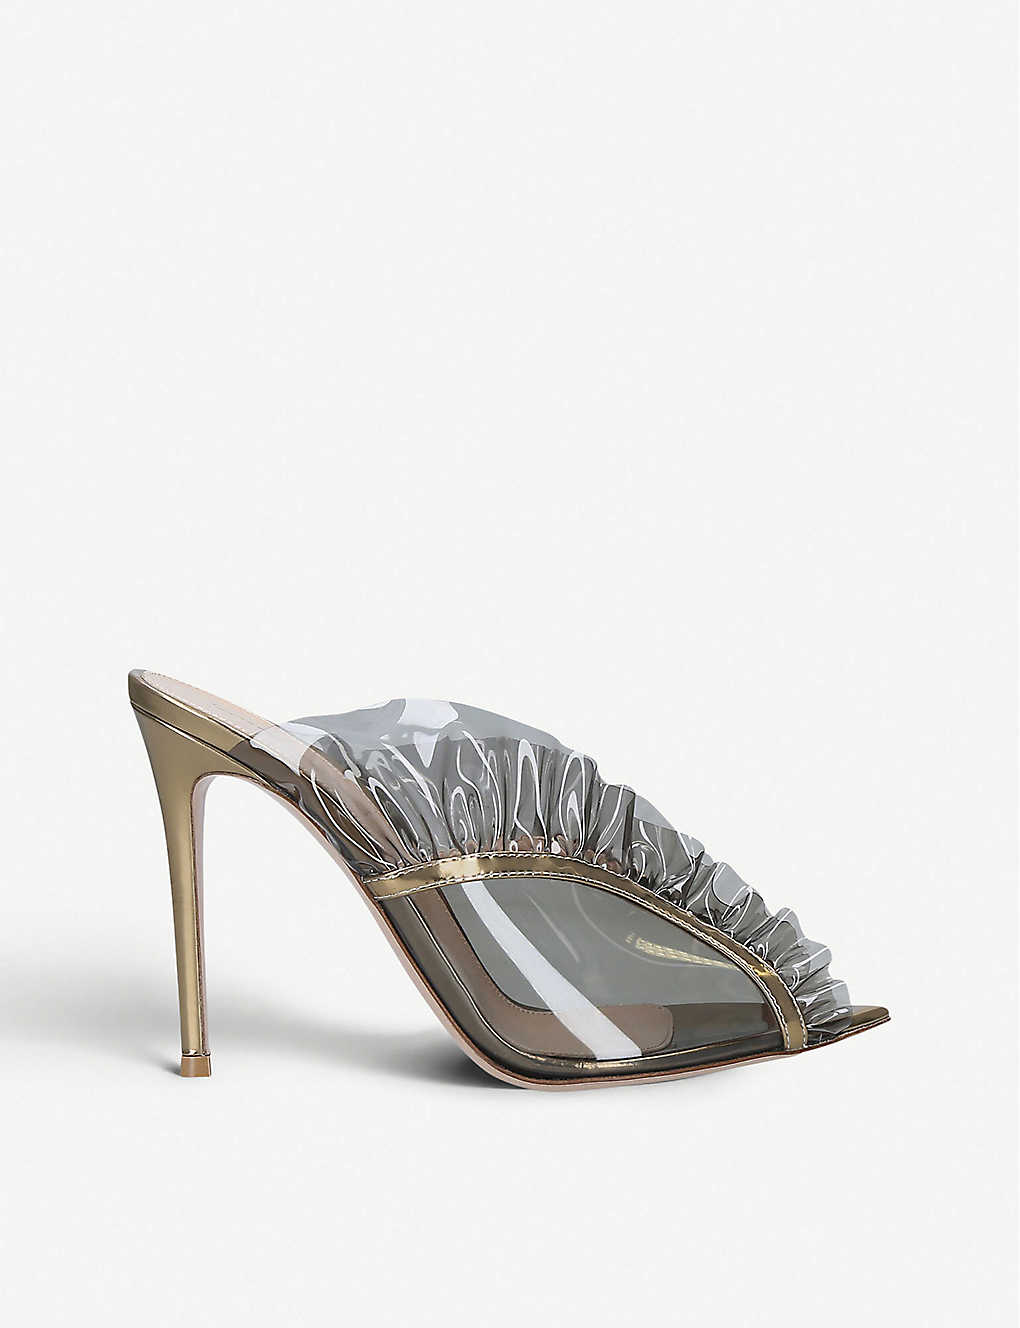 Gianvito Rossi Mules Fame 105 PVC and metallic-leather mules